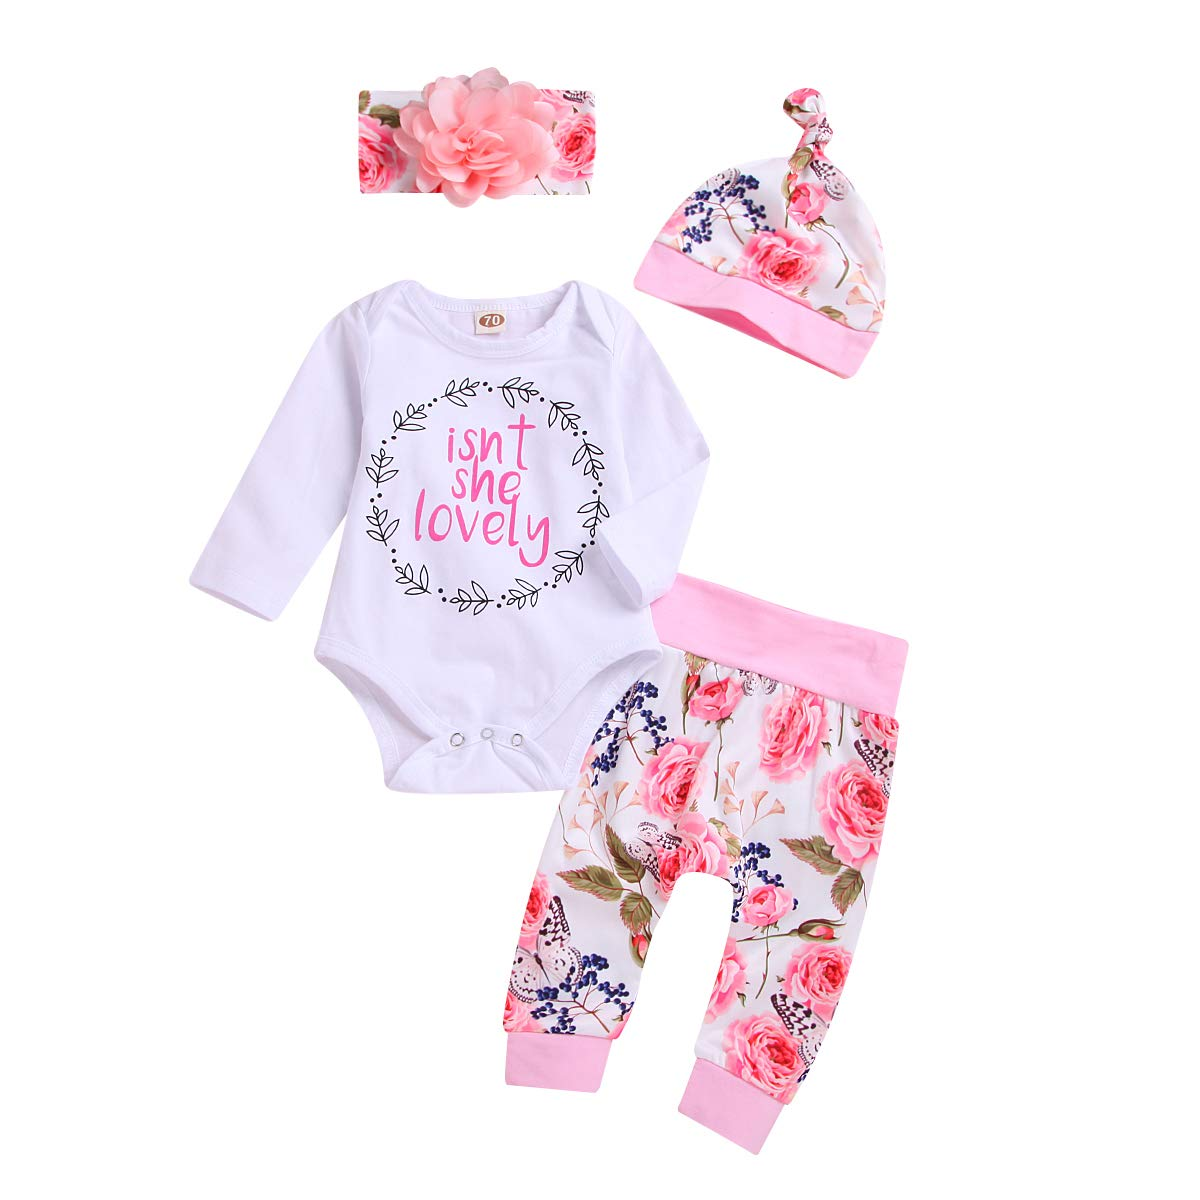 Newborn Girls Clothes Outfit Baby Long Sleeve Romper Pants Hats Headband Set Infant Toddler Clothing 4Pcs